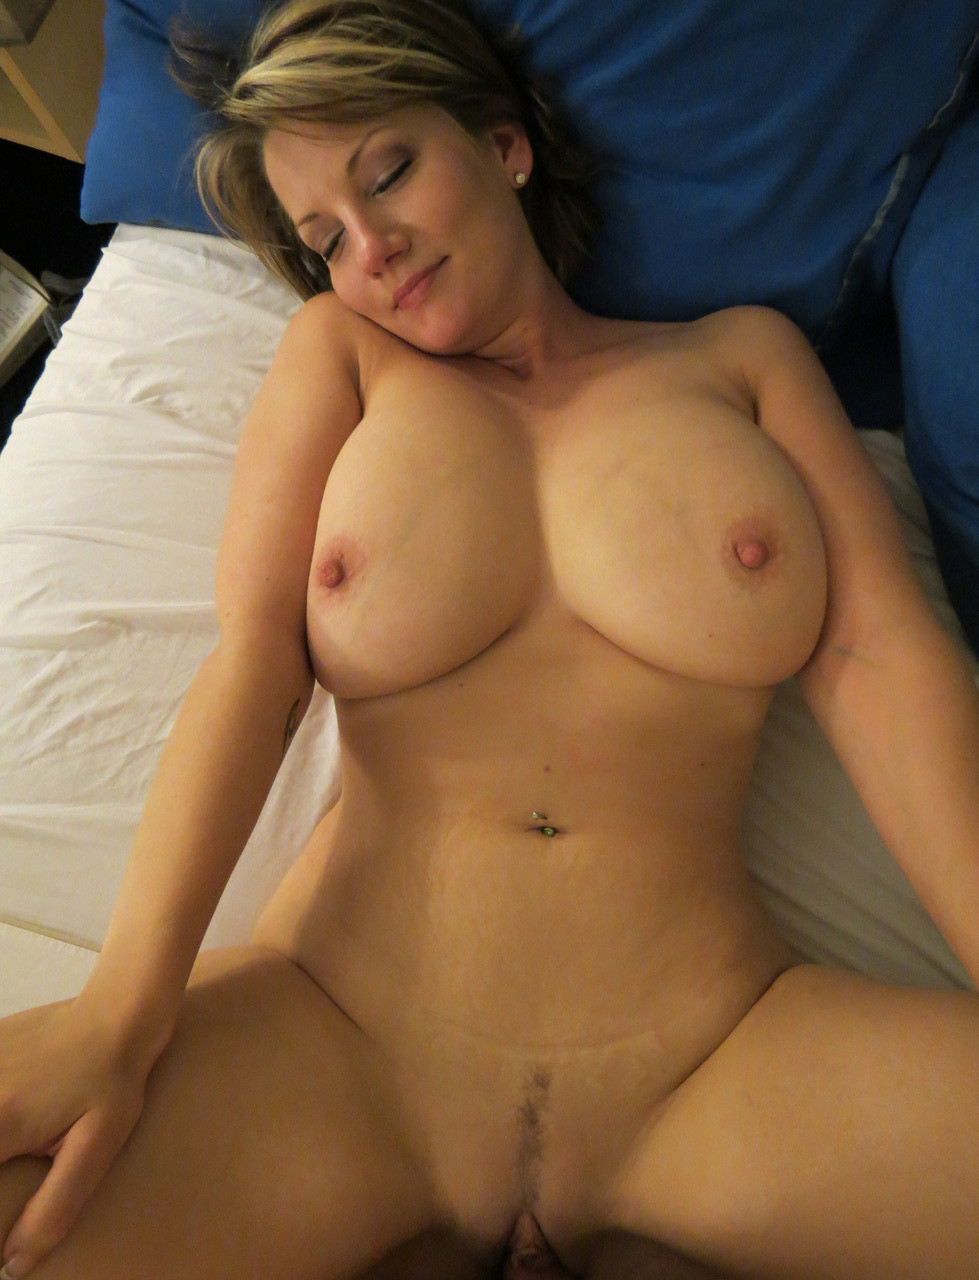 5 Pics Of Real Milf Wives Having Sex  Wifebucket -7155